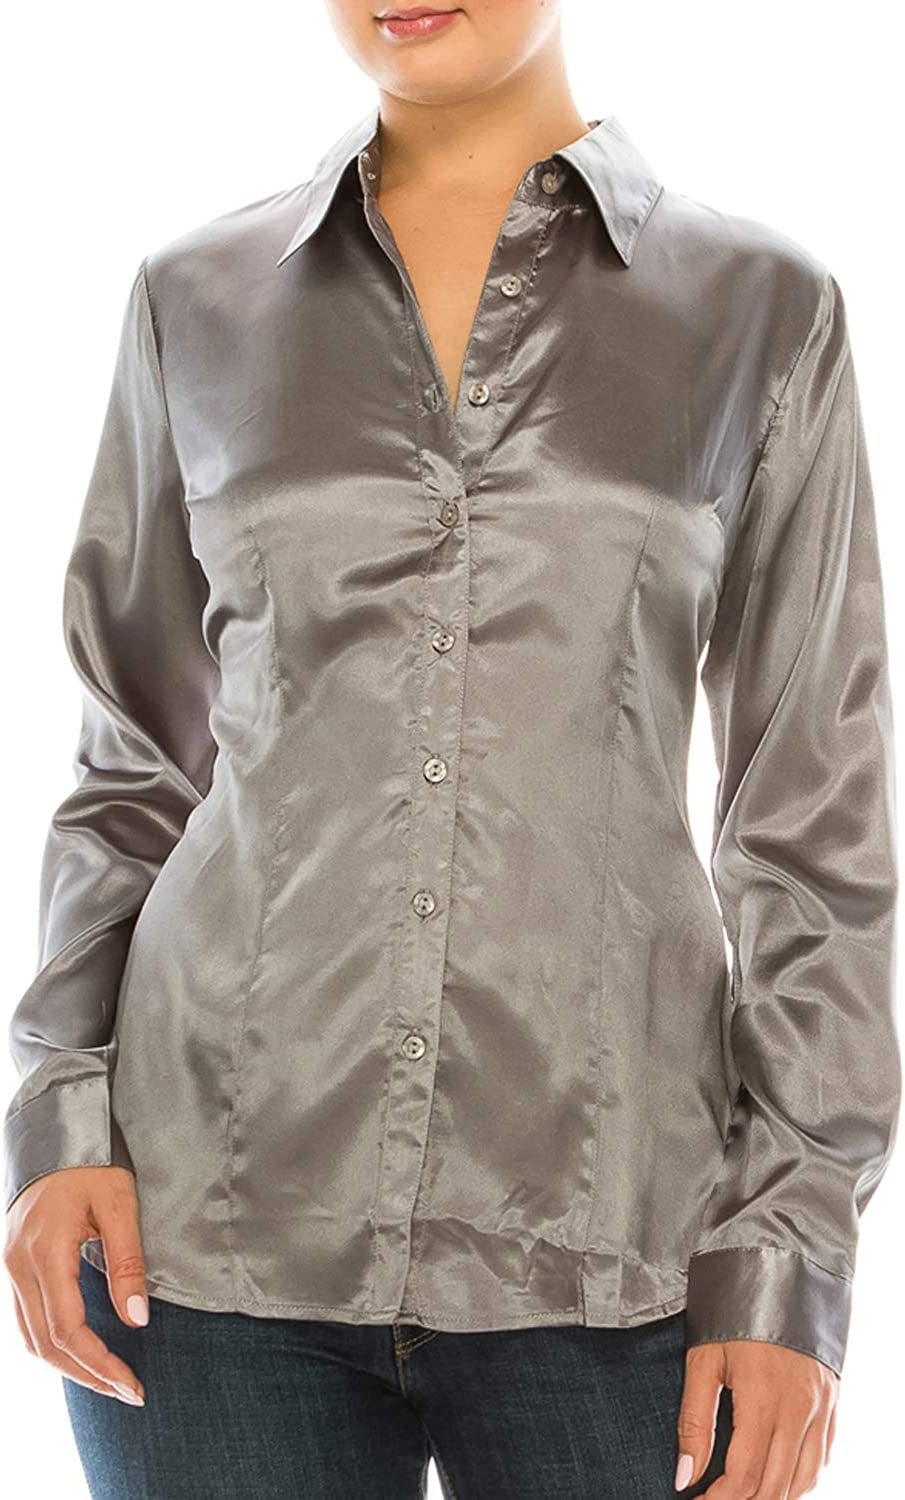 MAYSIX APPAREL Long Sleeve Satin Office Collar Down Forma Max 46% OFF Button Soldering